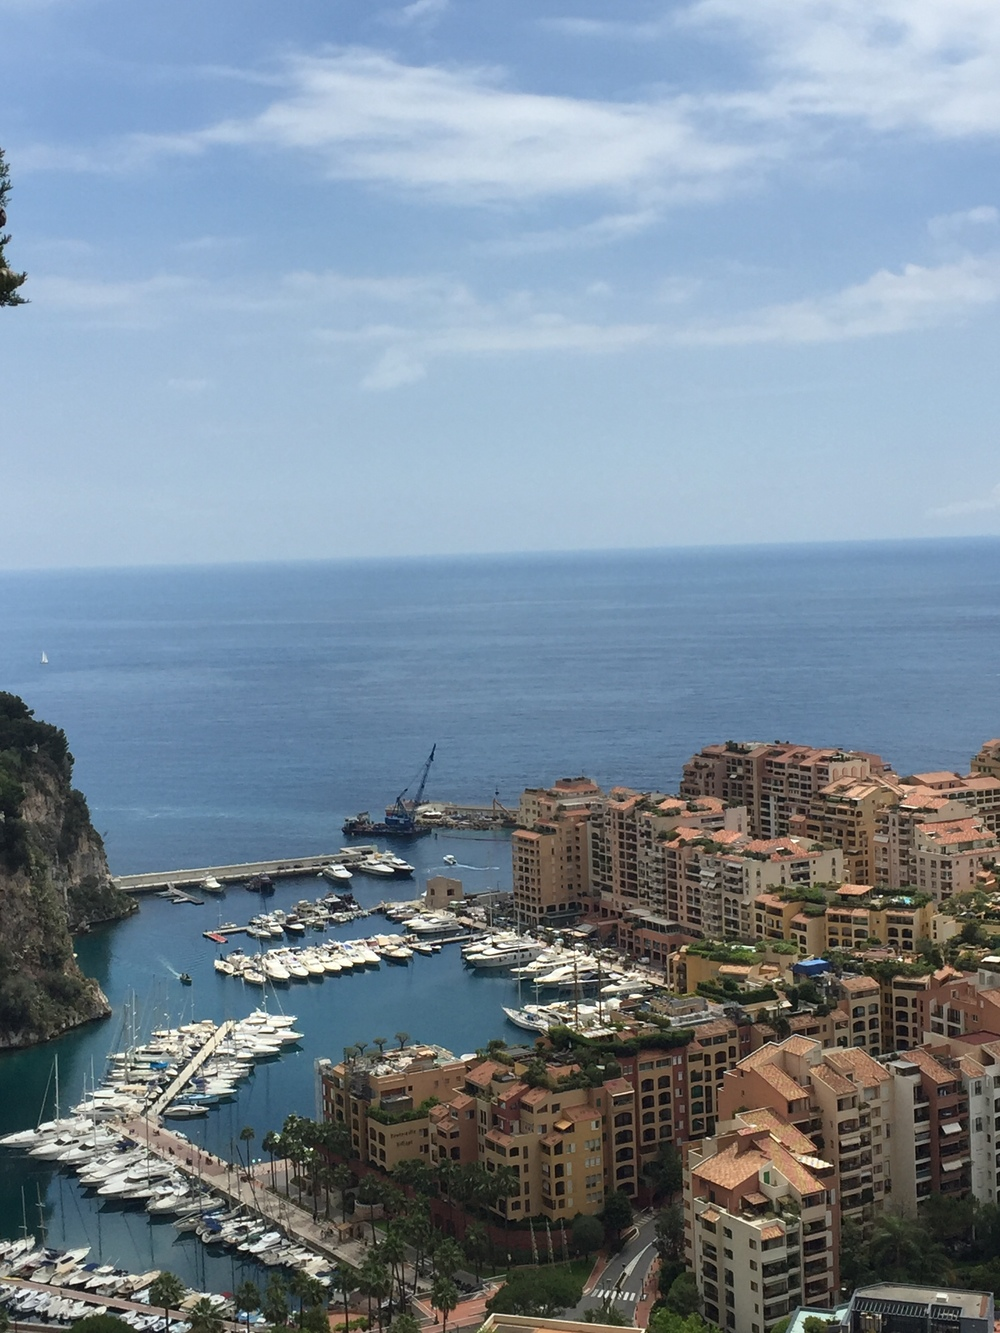 monaco-monte-carlo-travel-blog_27094392484_o.jpg